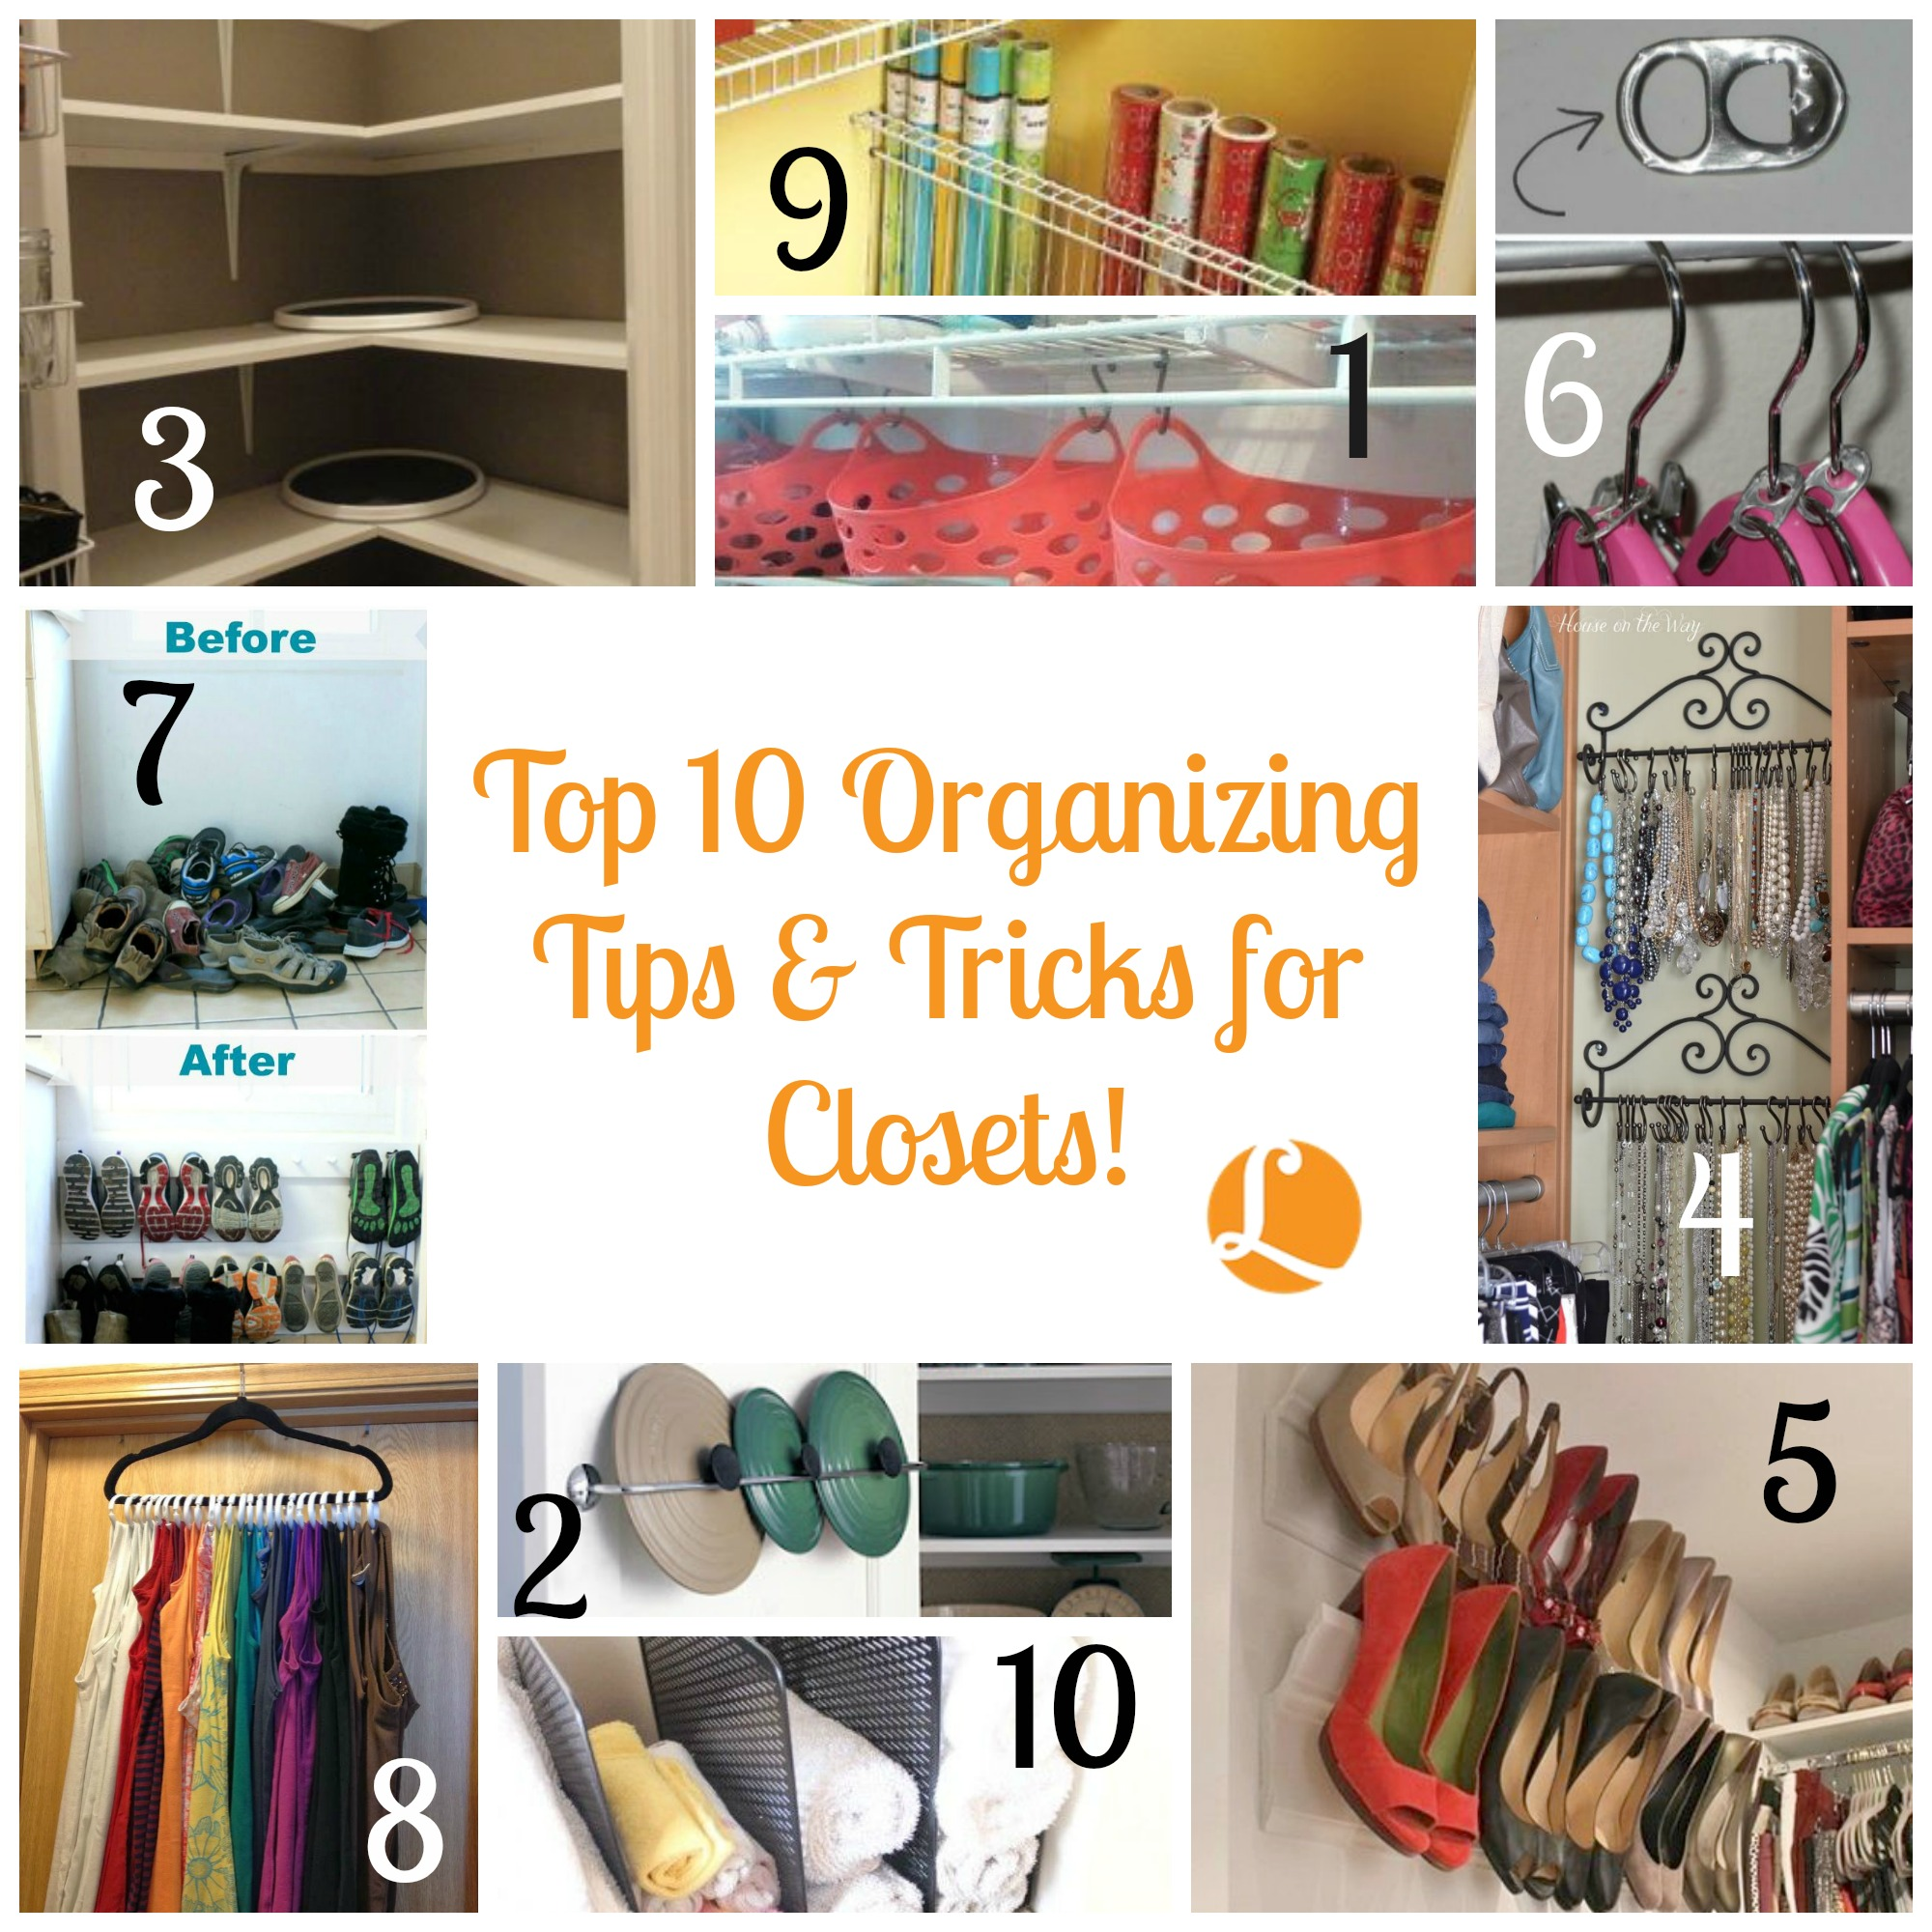 Superieur Closet Organization Tips. Beau  Top10OrganizingTipsu0026TricksClosets_12115